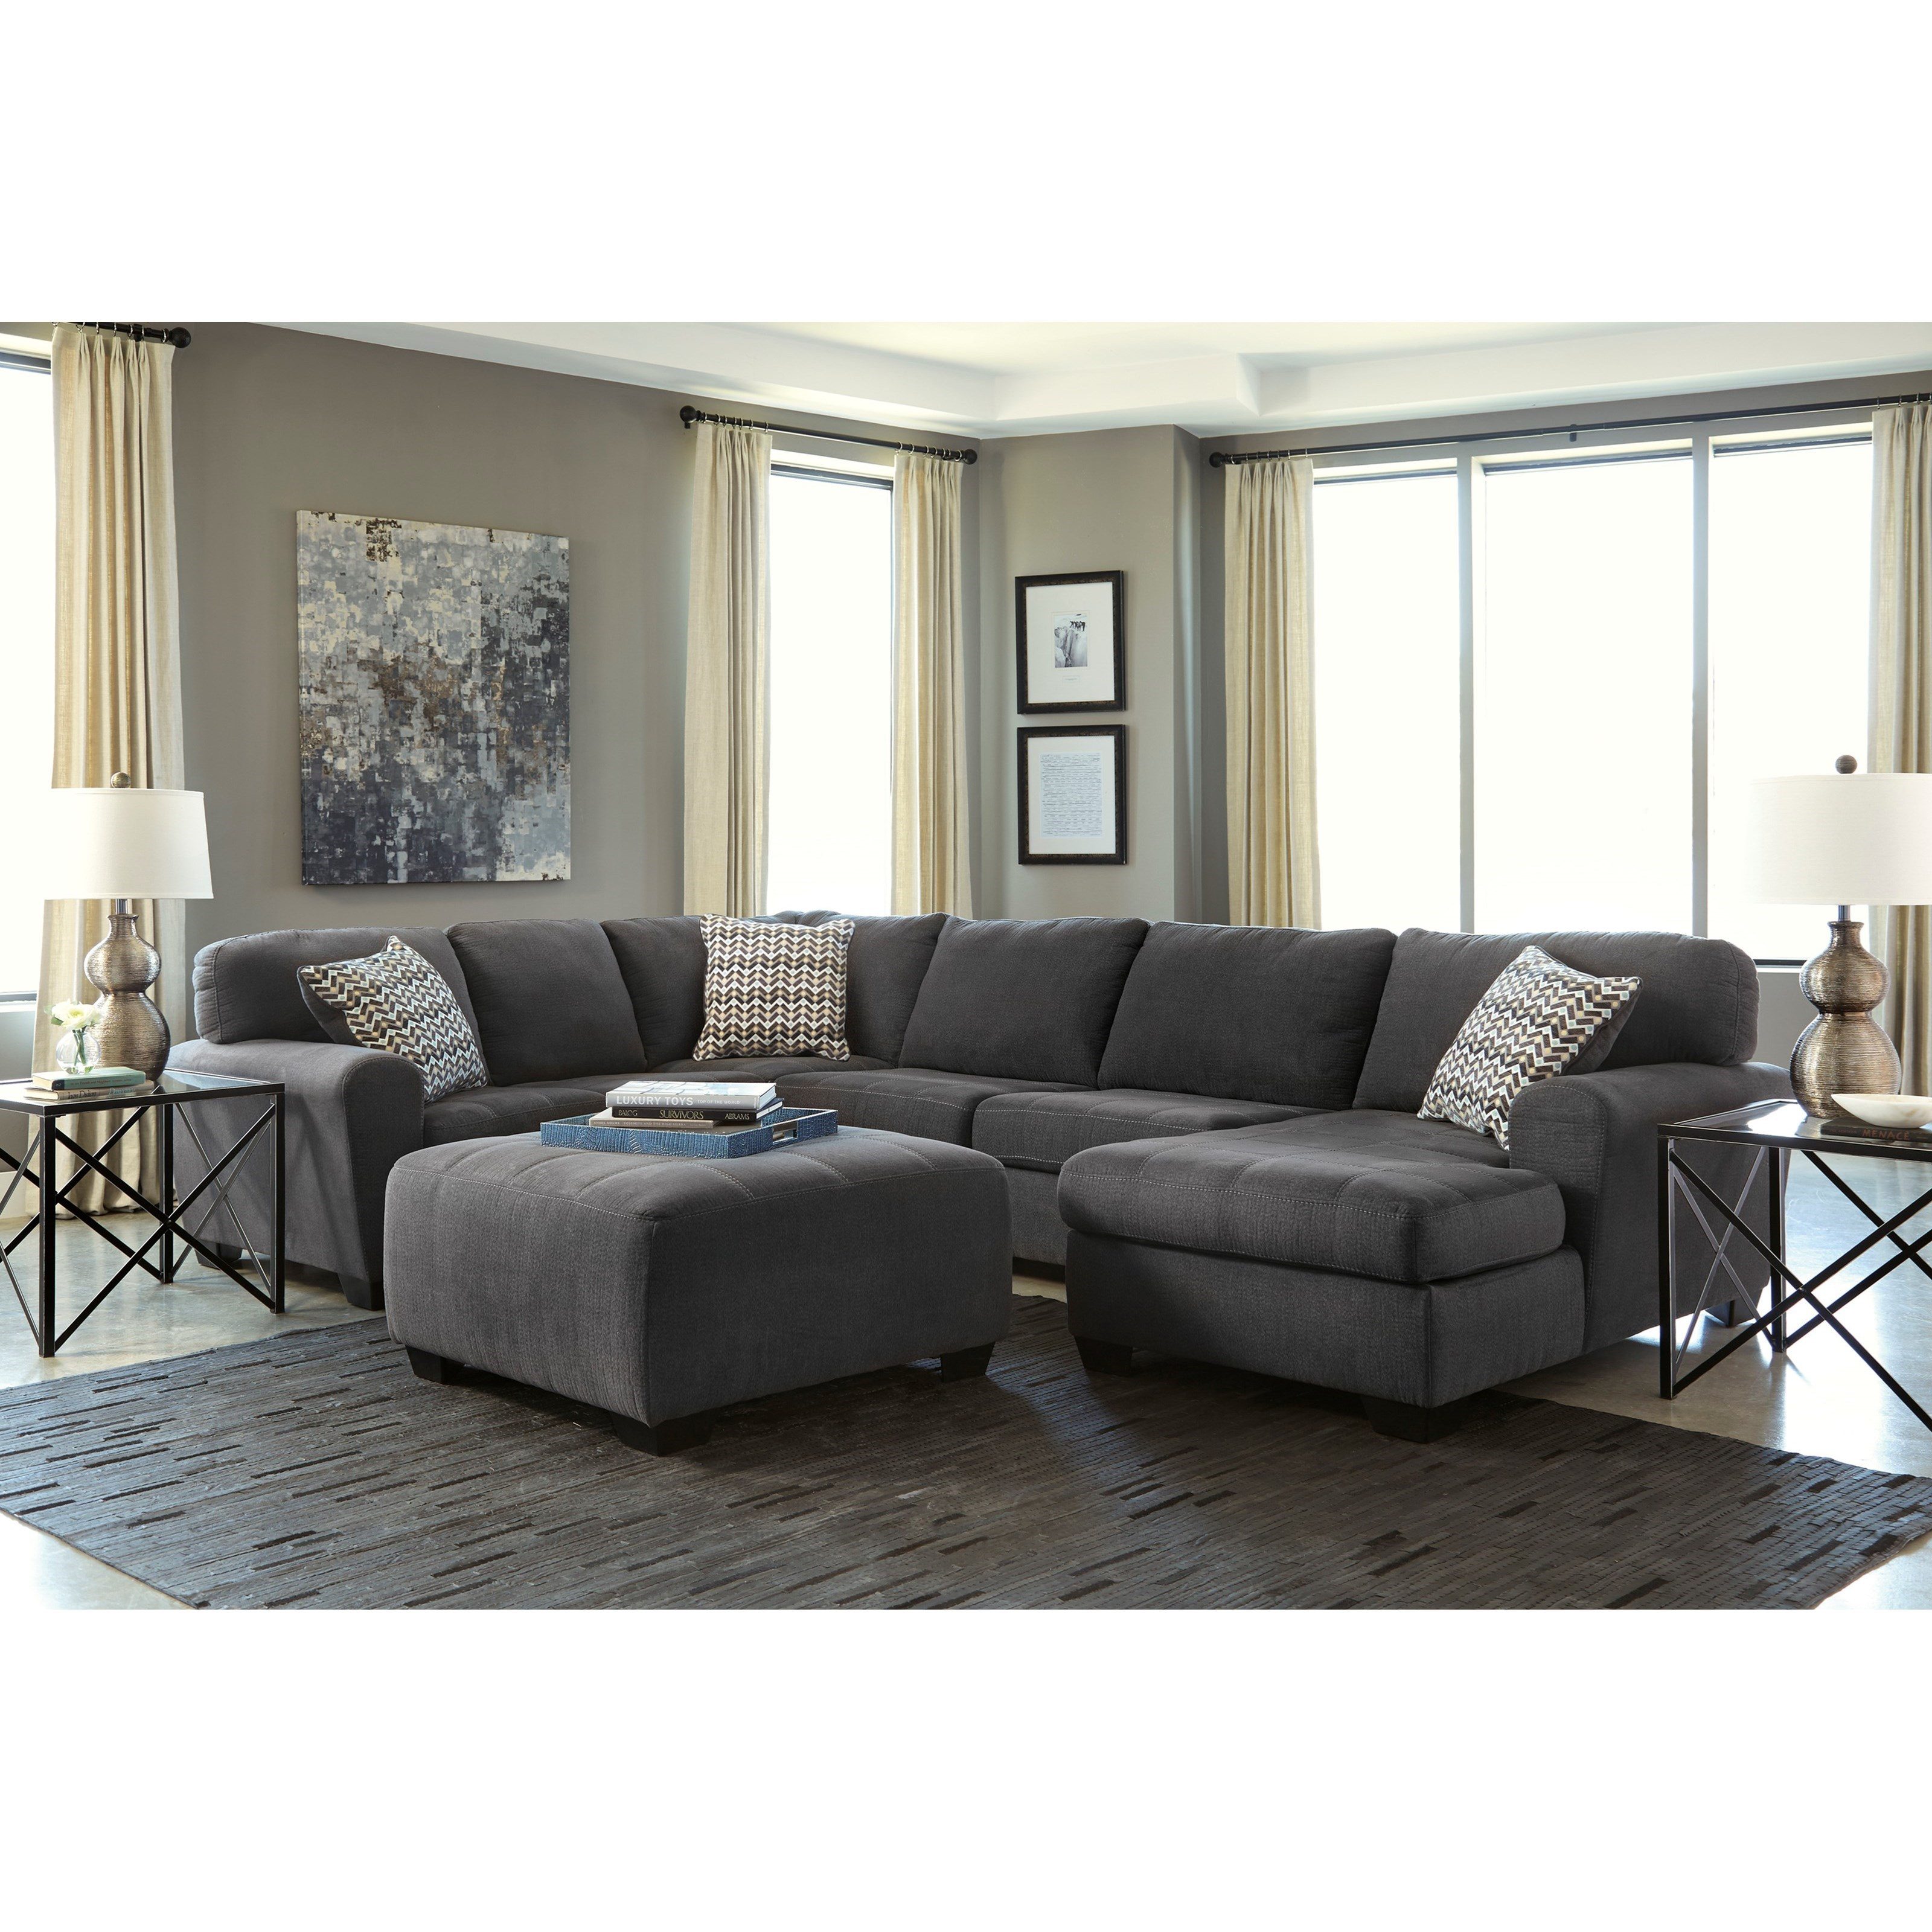 Ambee Living Room Group by Benchcraft at Miller Waldrop Furniture and Decor